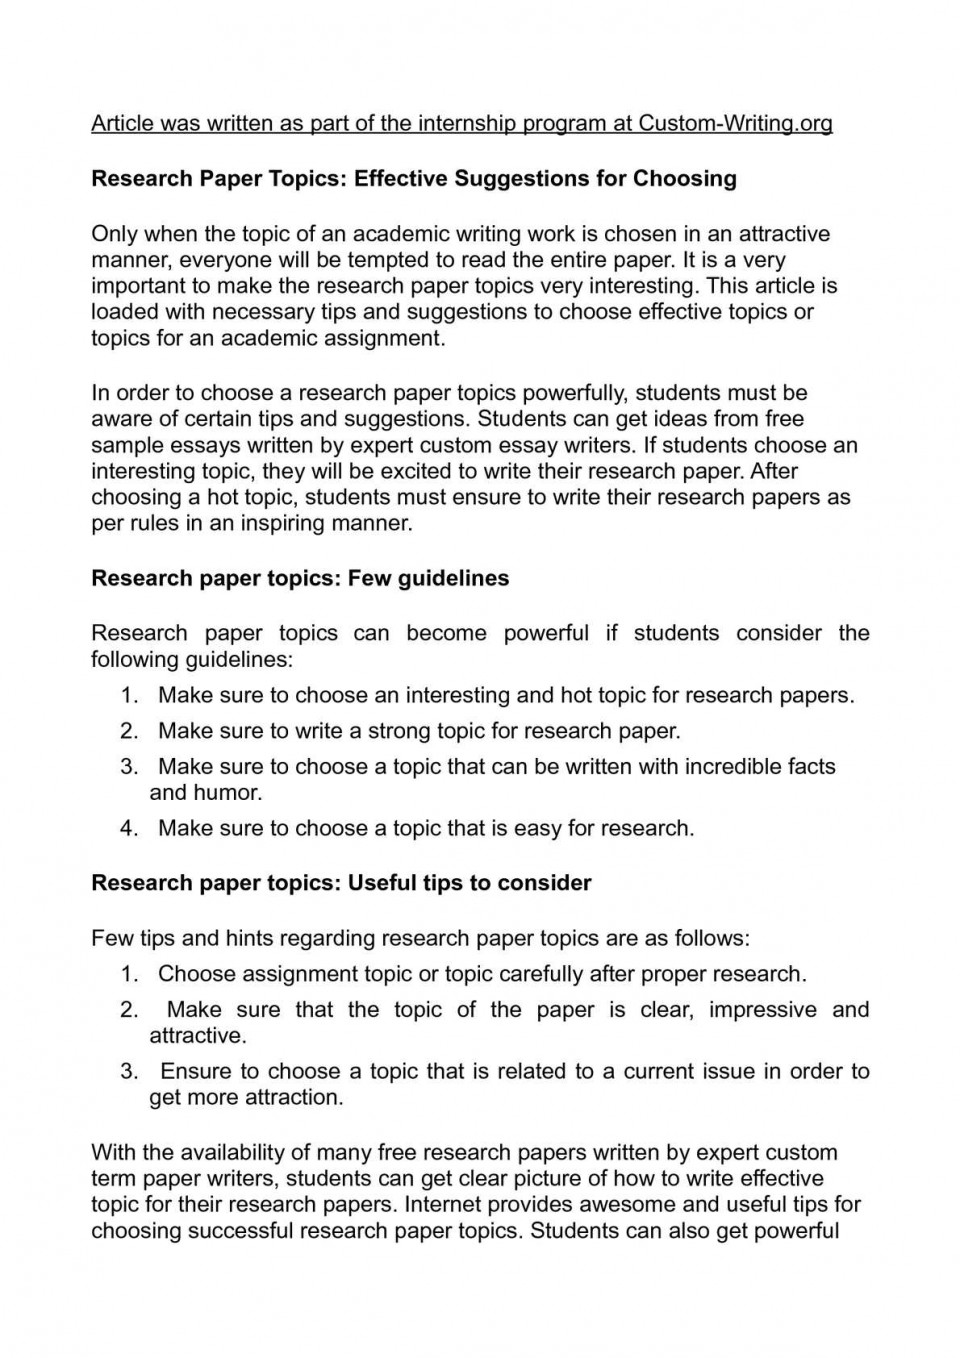 016 Easy Research Paper Topics Fantastic For High School Students Reddit To Write About 960